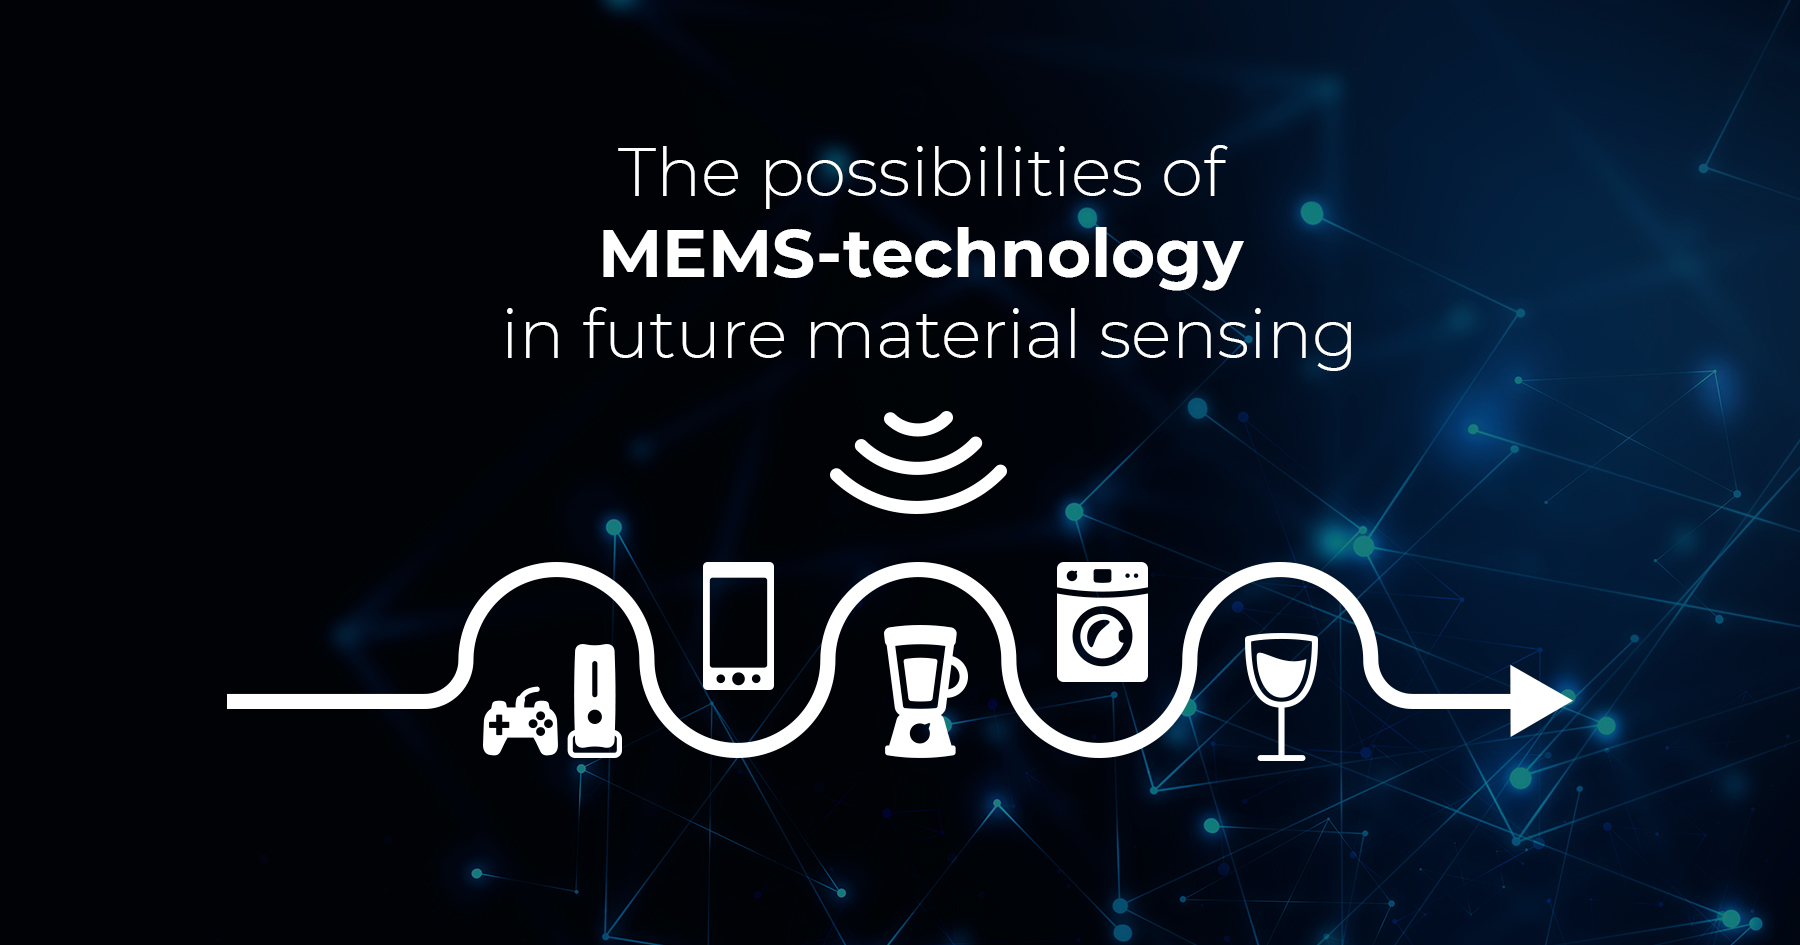 MEMS-technology